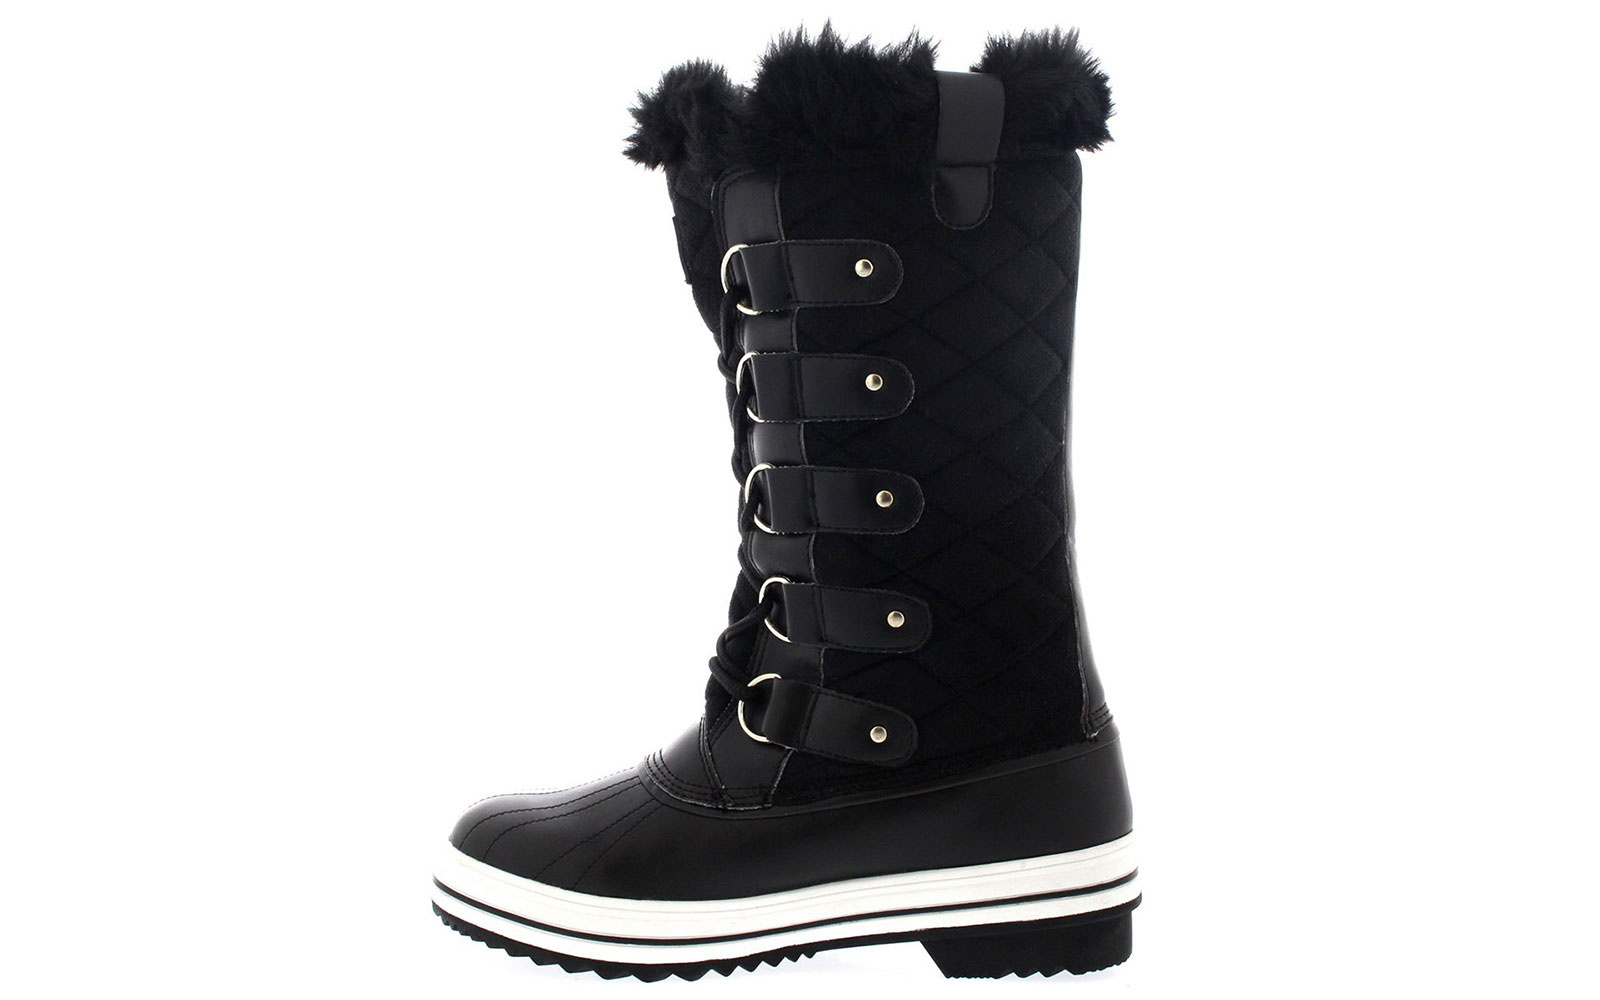 Best for Warmth: Polar Women's Nylon Tall Winter Snow Boot